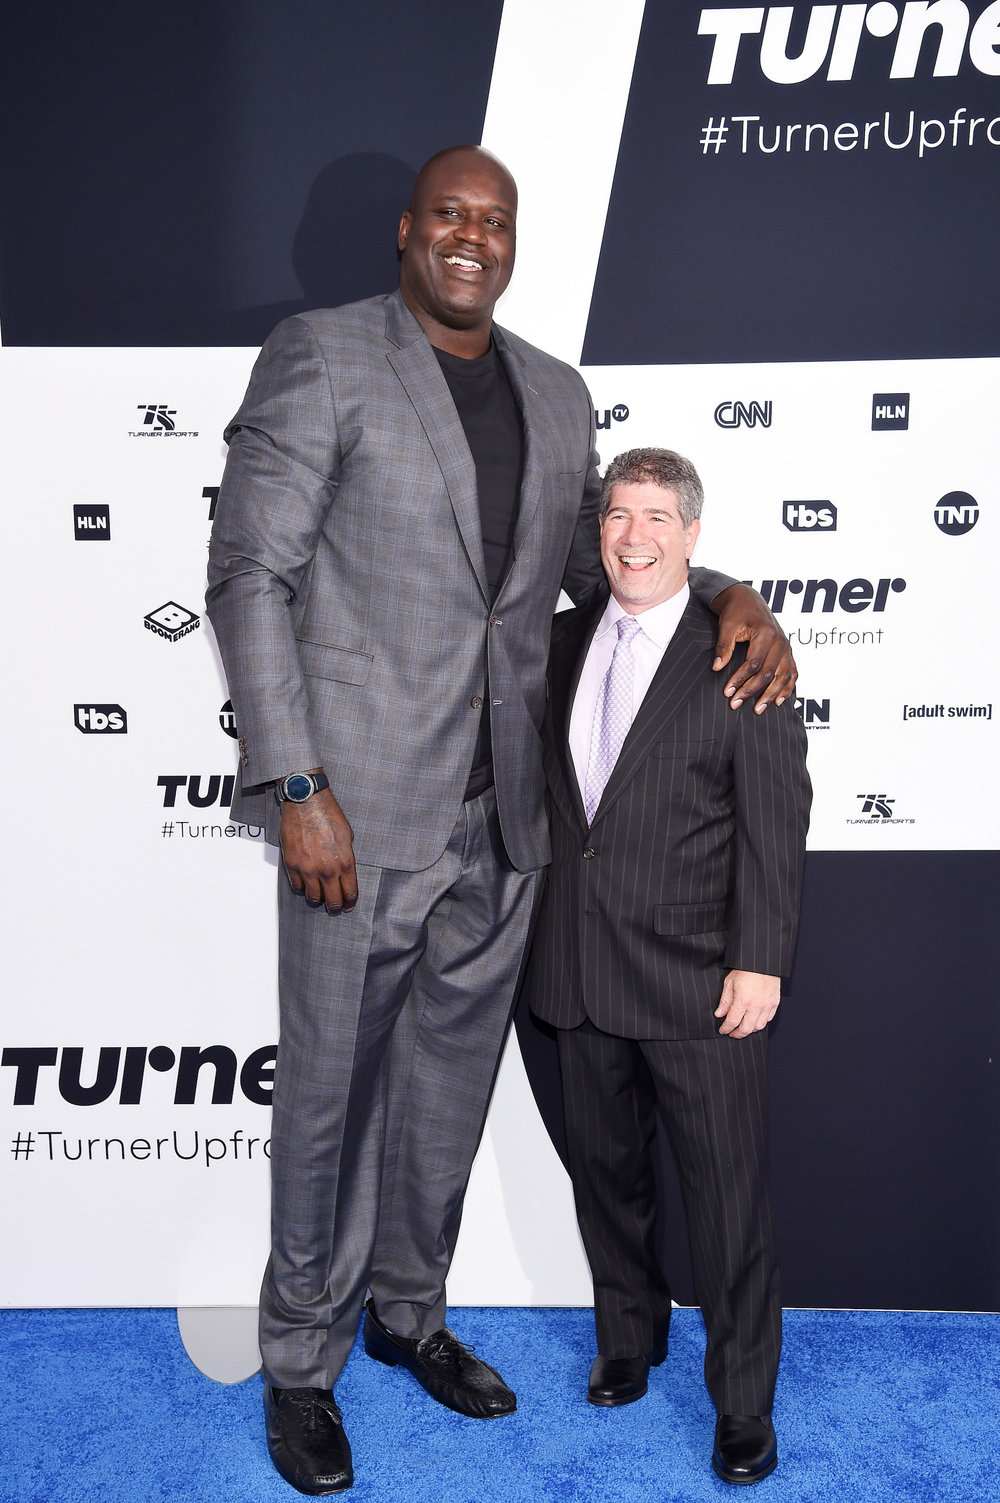 (Left to Right)  Shaquille O'Neal  of  Inside the NBA  on TNT and  Lenny Daniels , President of Turner Sports at the  Turner Upfront 2017  red carpet on May 17, 2017 in New York City. (Photo by Dimitrios Kambouris/Getty Images)